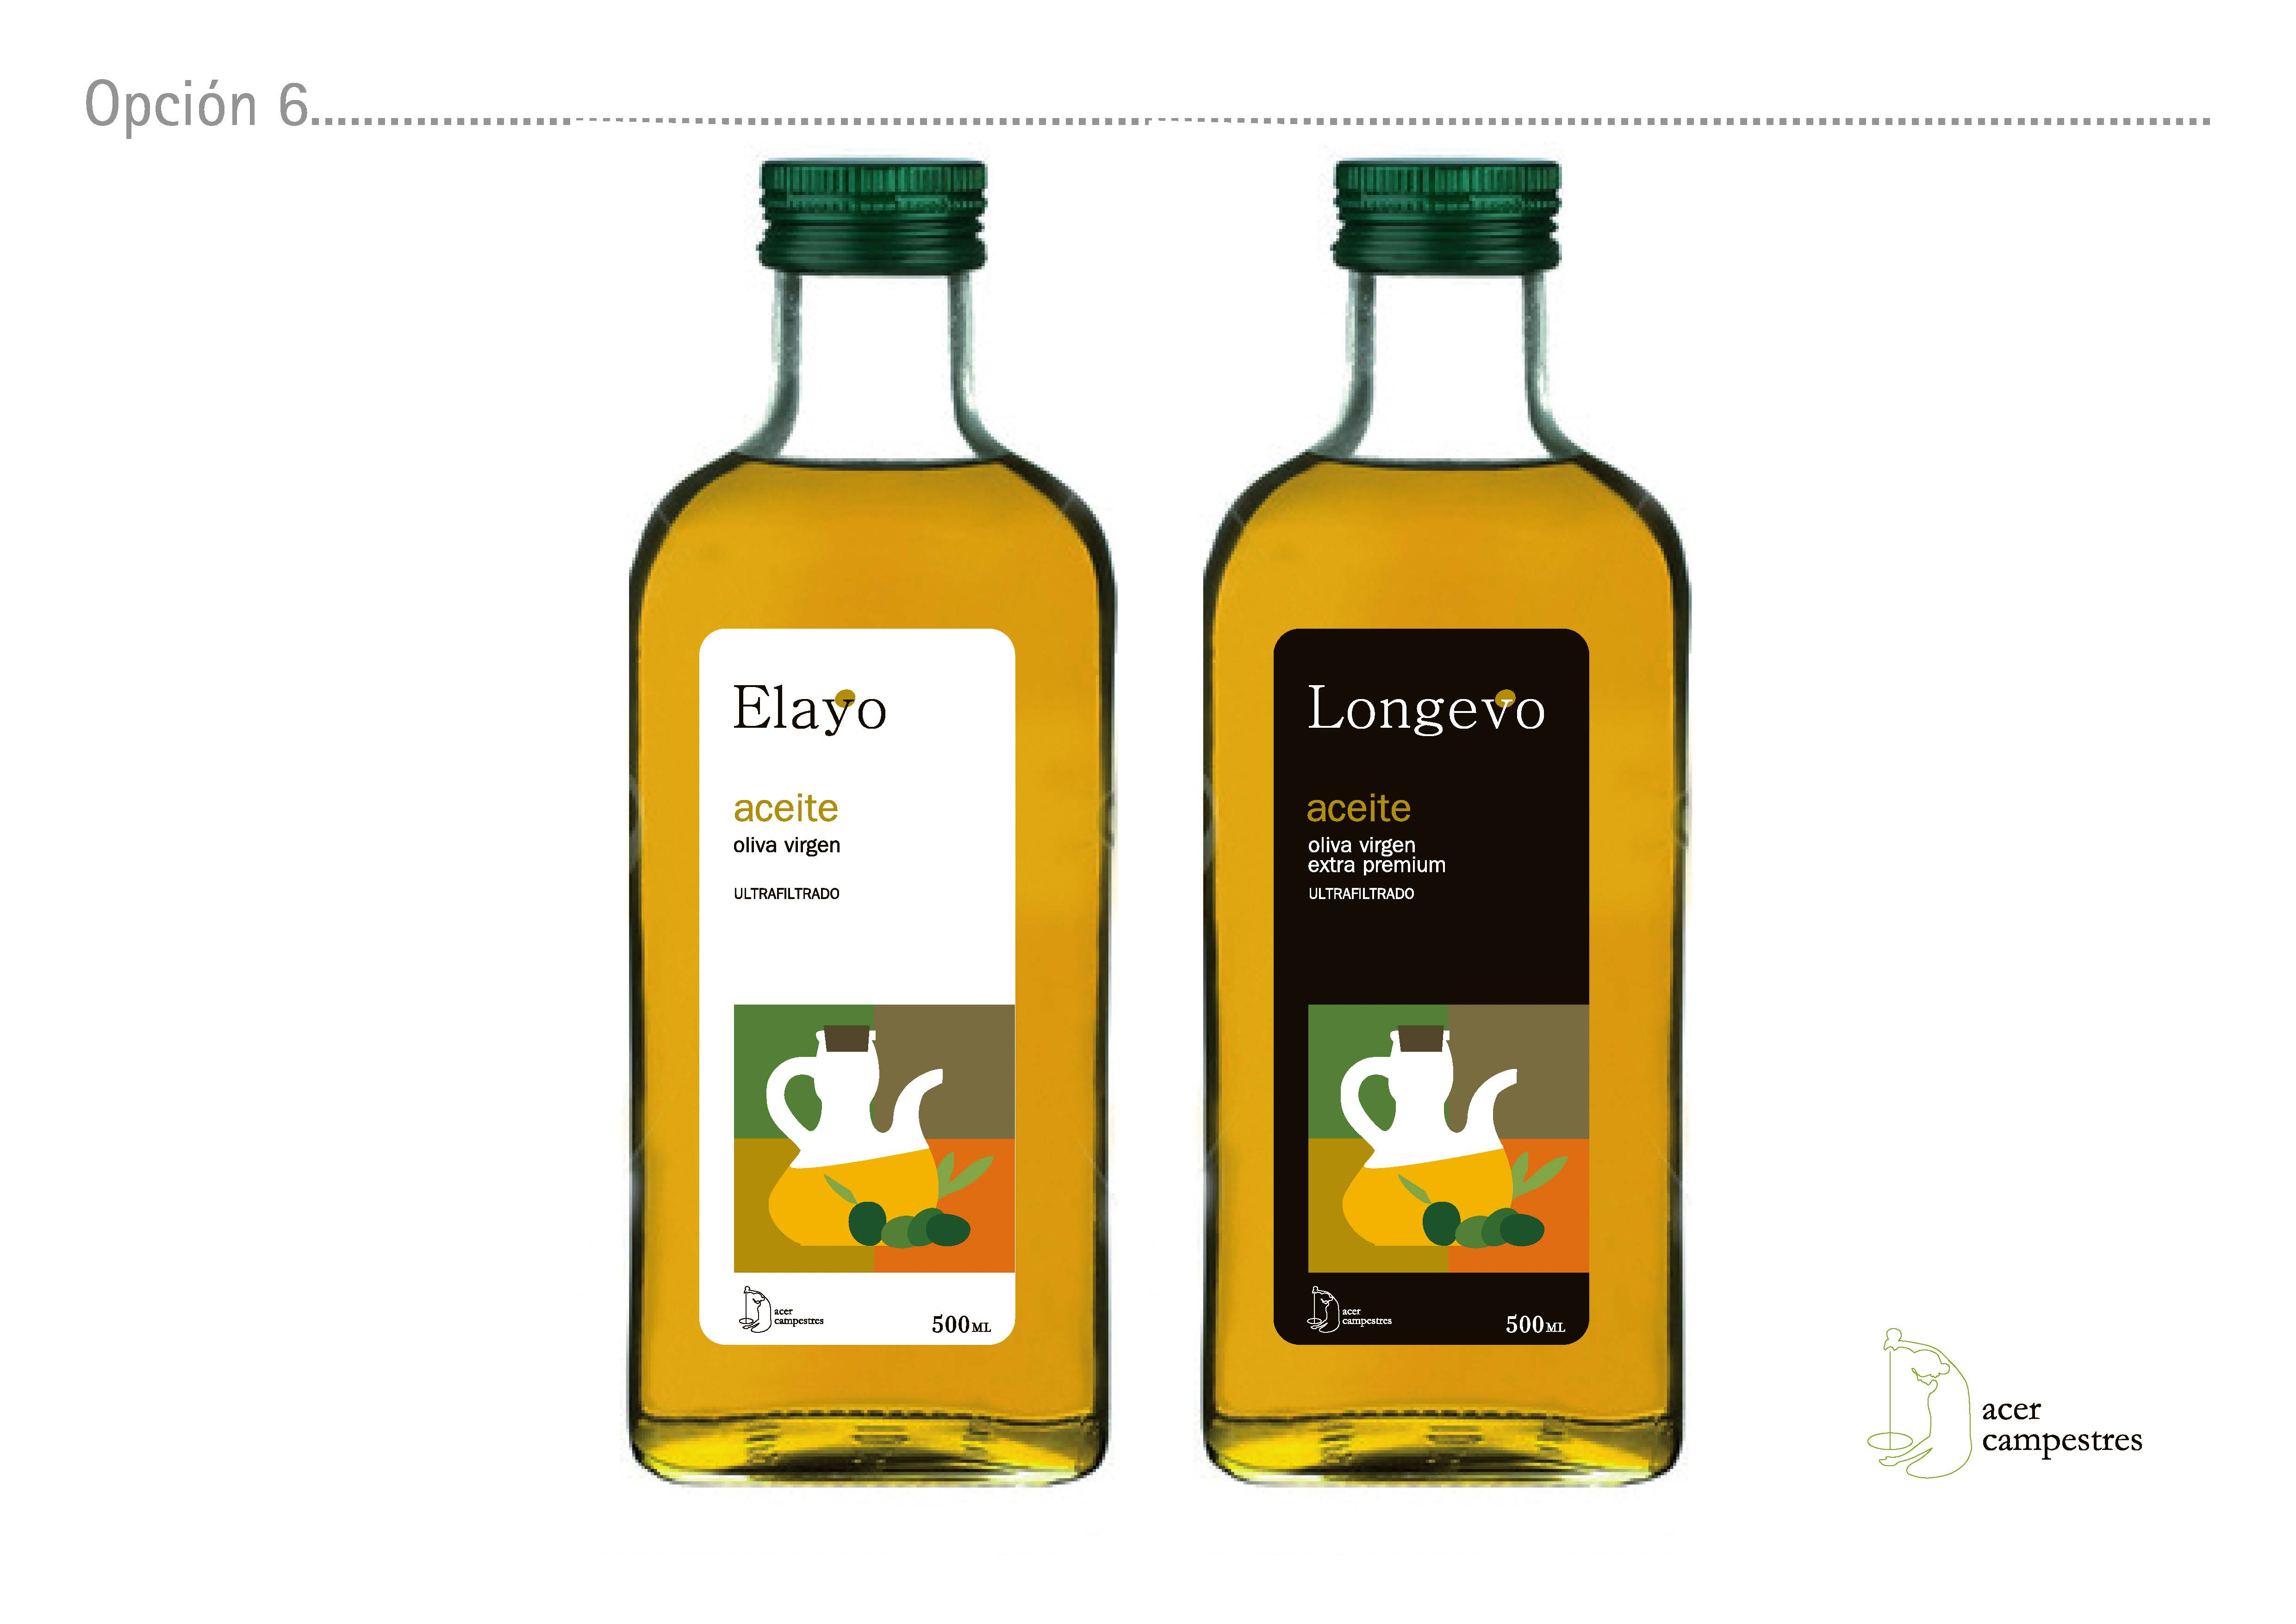 Packaging aceite ELAYO Y LONGEVO (6).jpg